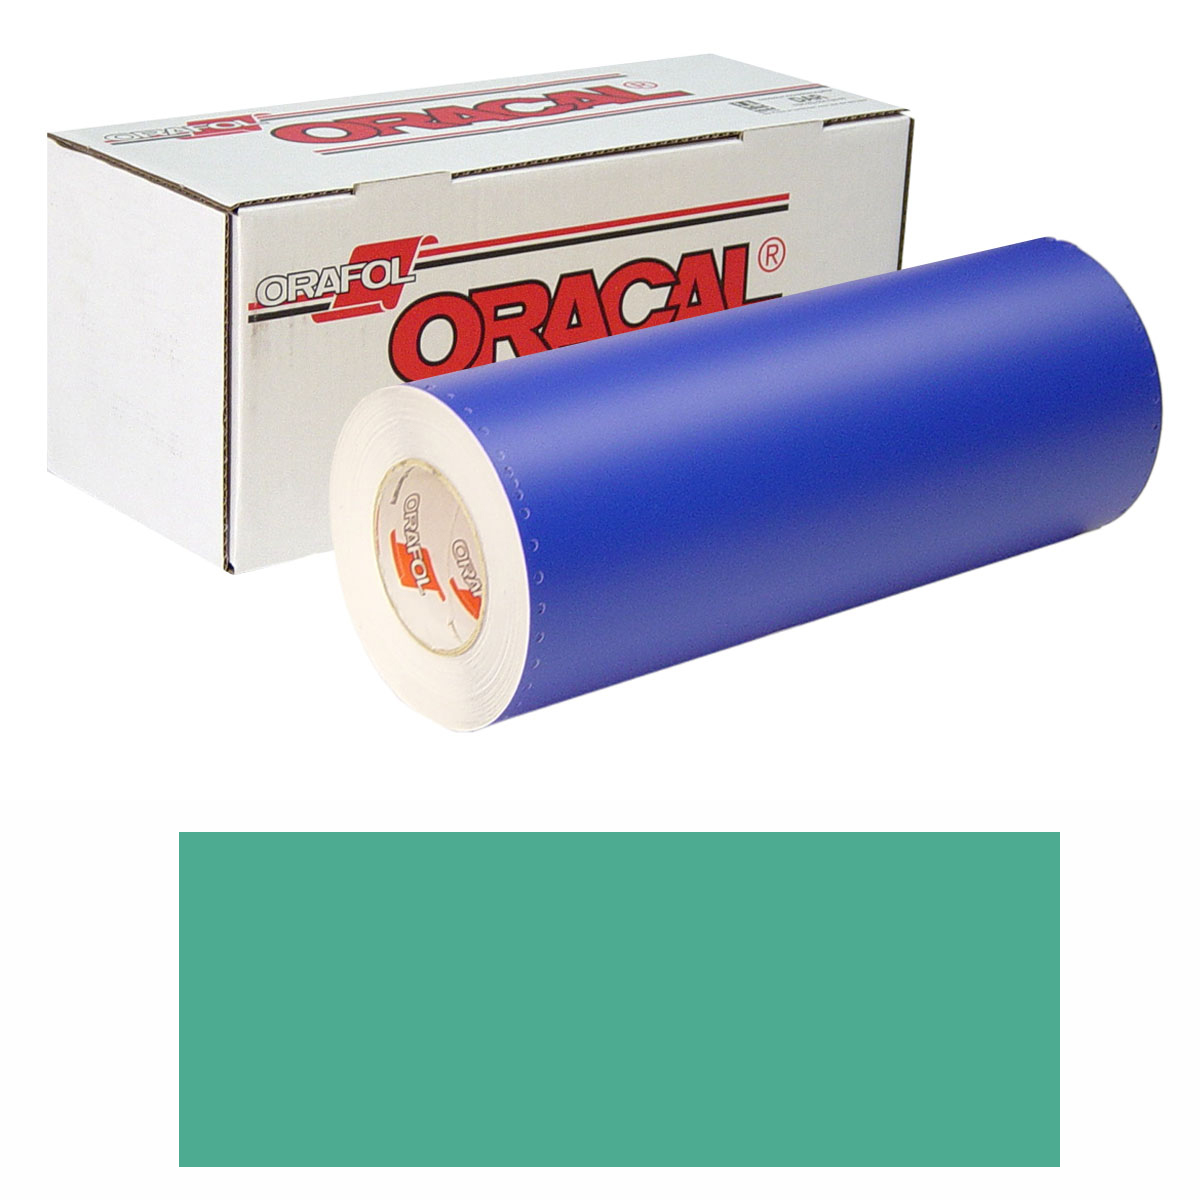 ORACAL 8300 15In X 10Yd 061 Green